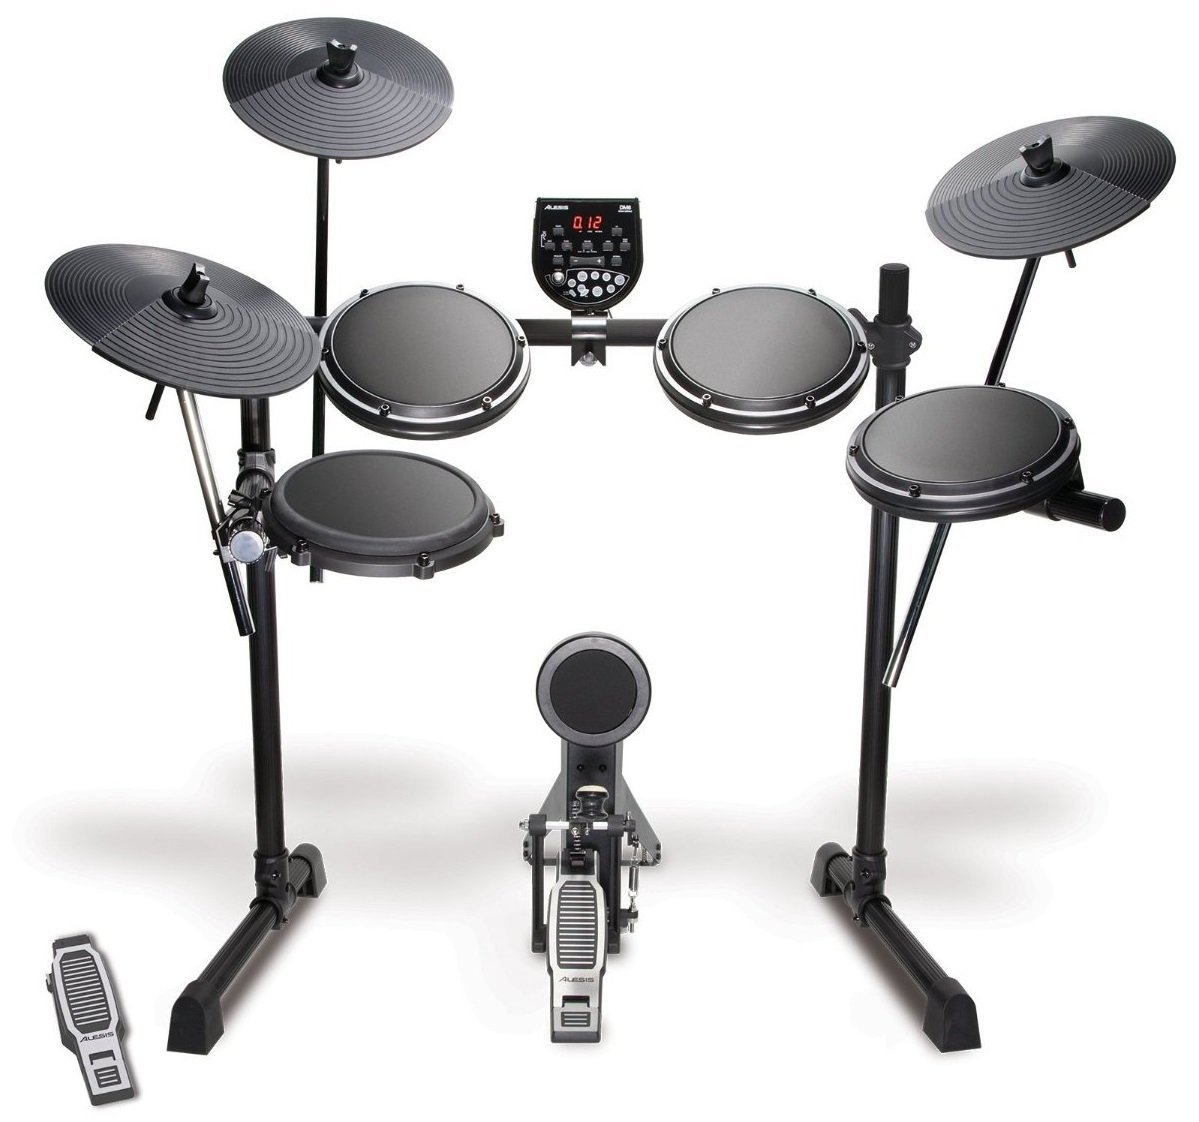 7 Best Drum Set For Kids Buying Guide 2018 Gt Gt